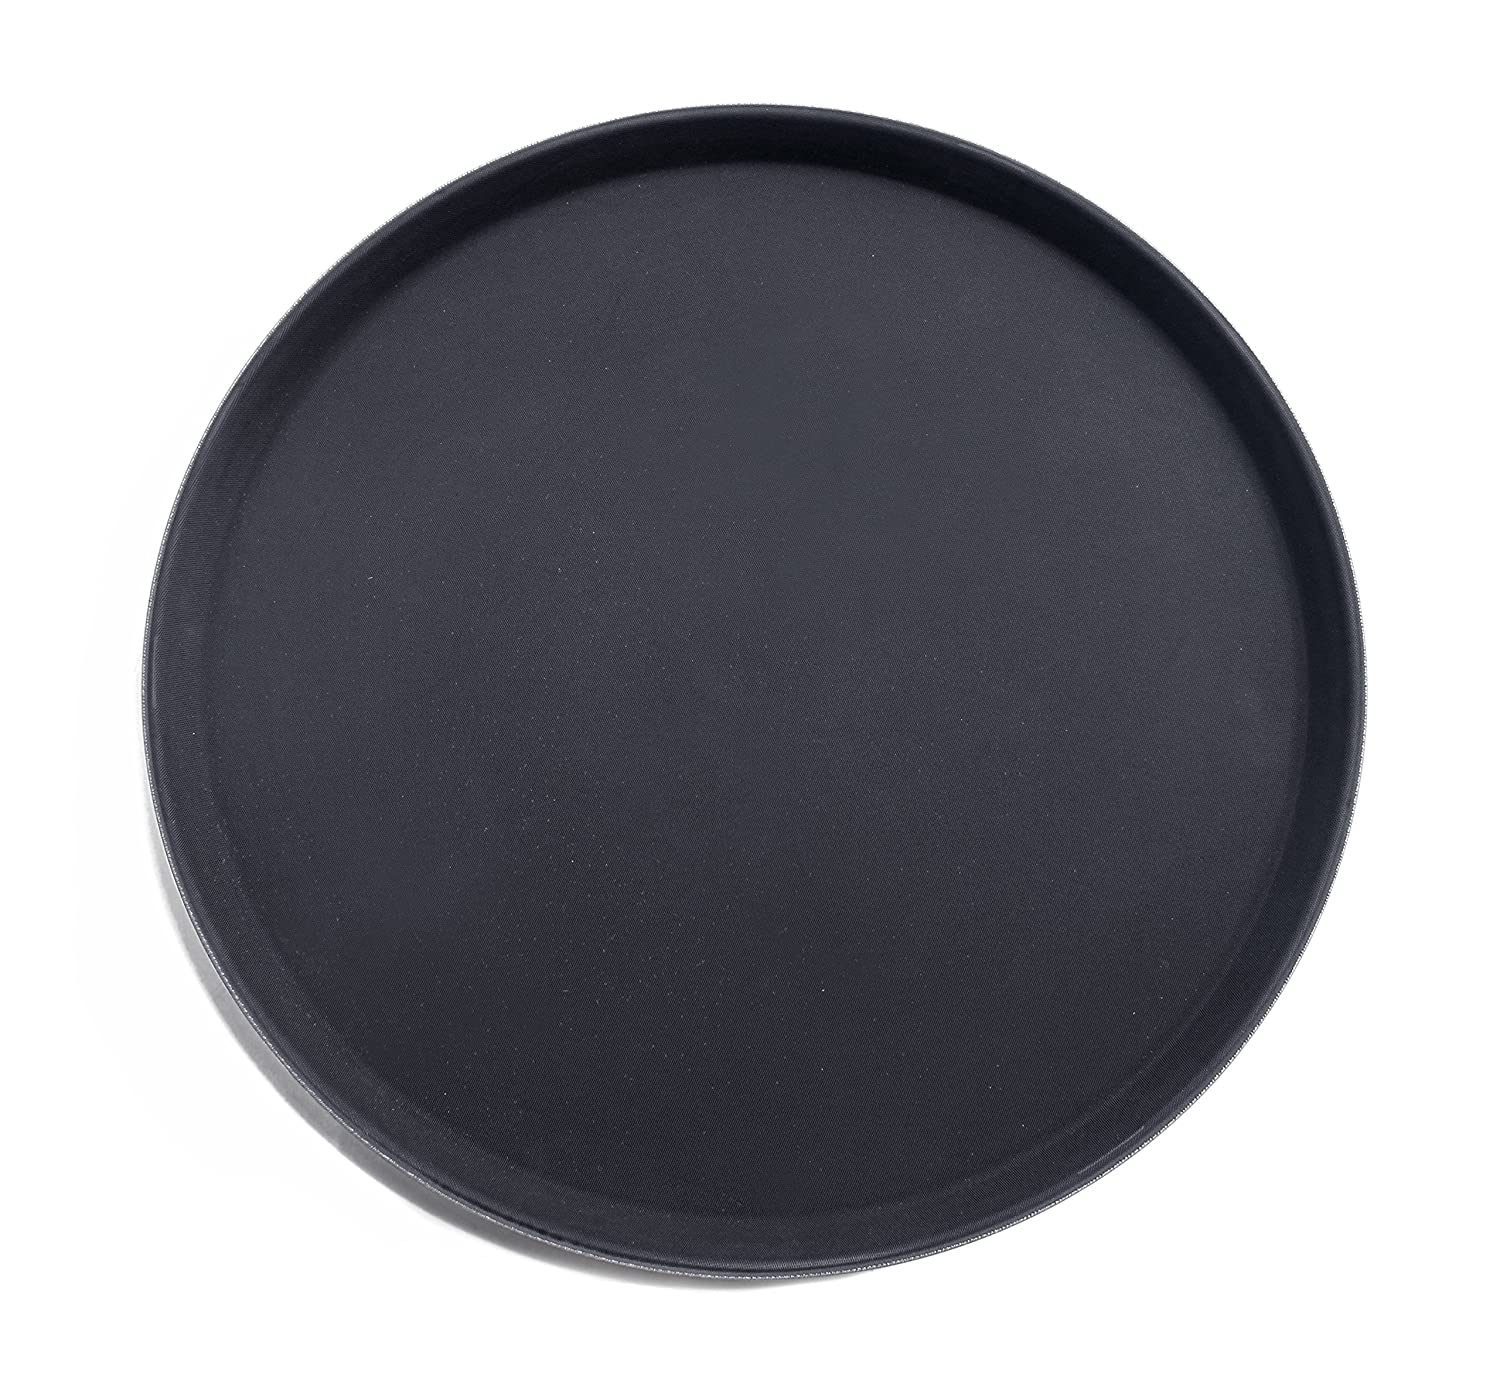 New Star 24913 NSF Plastic Round Rubber Lined Non-Slip Tray, 11-Inch, Black New Star Foodservice